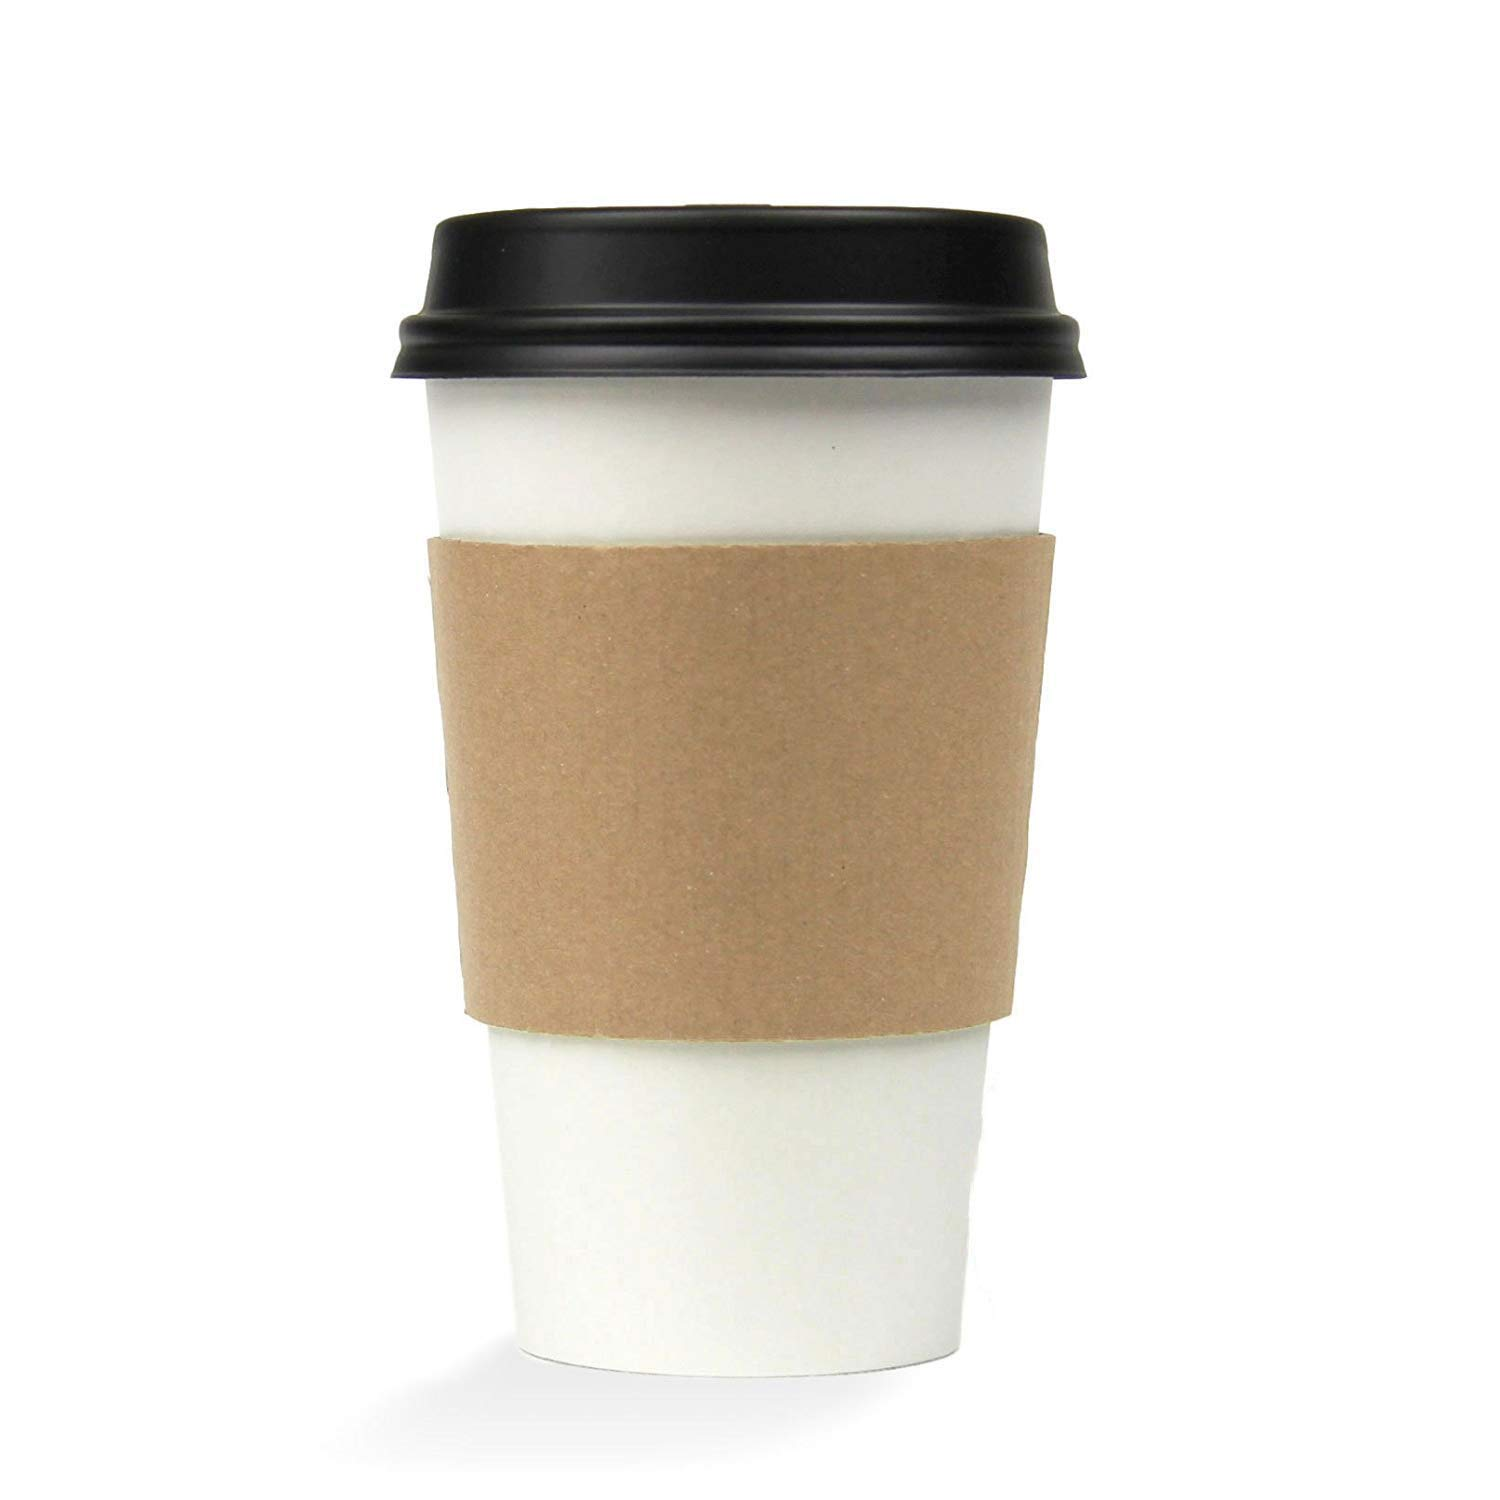 Hot Tea/Shake Cup & Lid Combo - Regular Size 1,000 ct (Shown with optional hot sleeve)